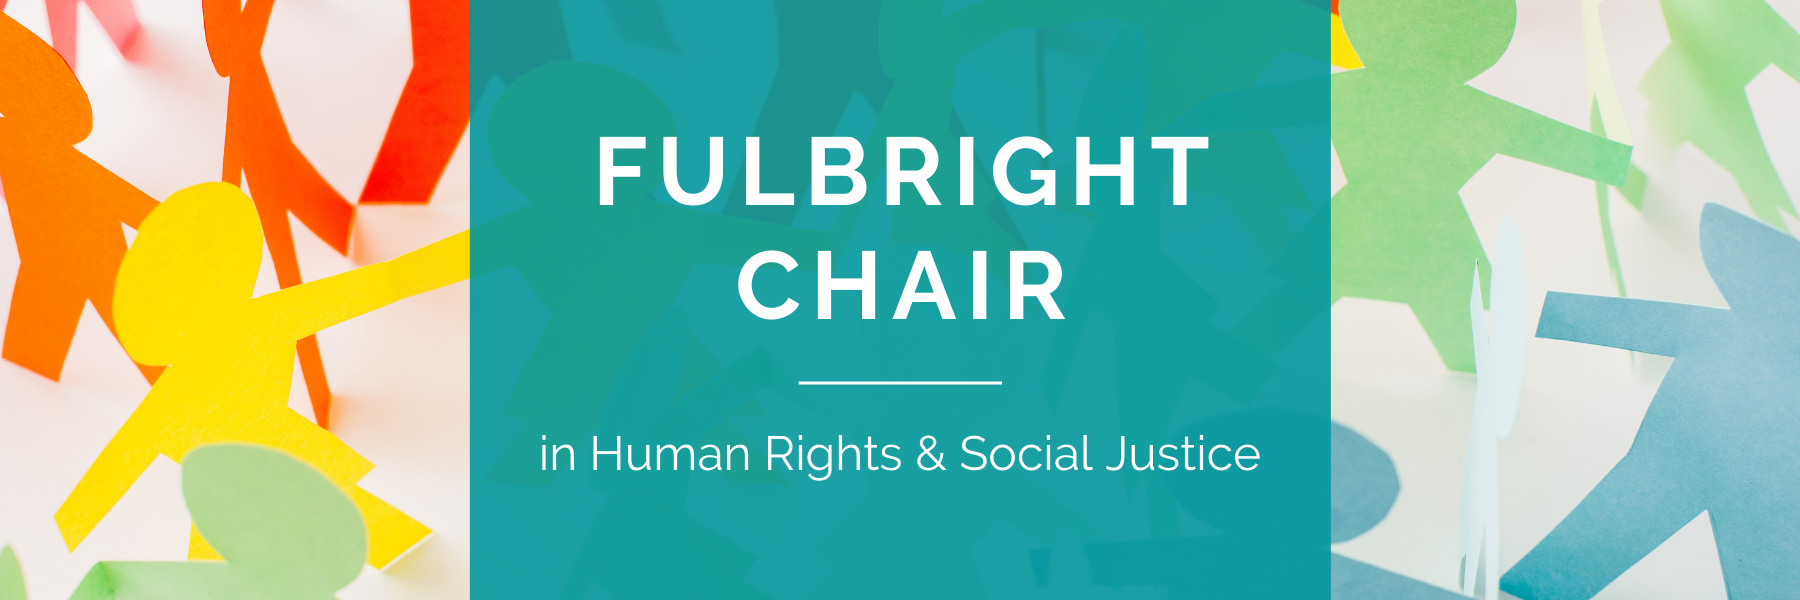 Fulbright Chair in Human Rights and Social Justice